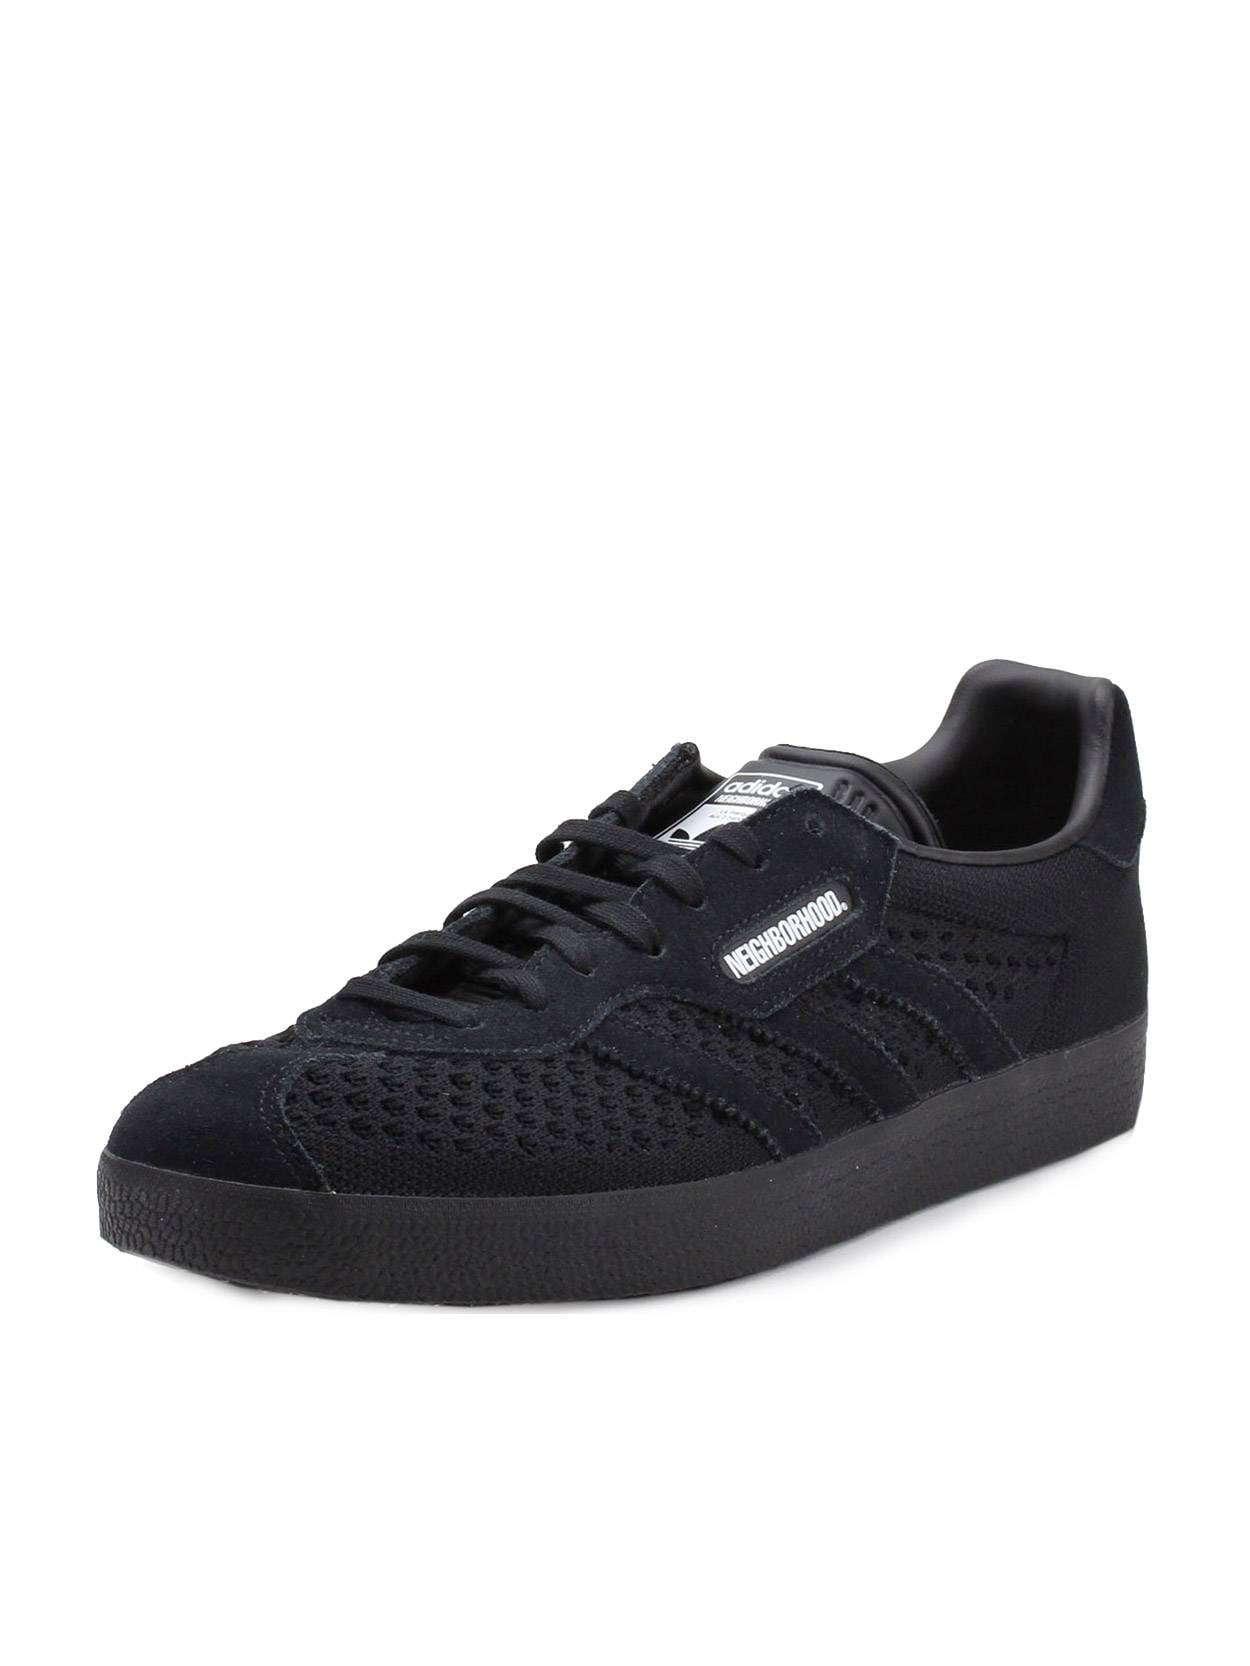 Adidas Mens Gazelle Super NBHD NEIGHBORHOOD Black DA8836 by Adidas